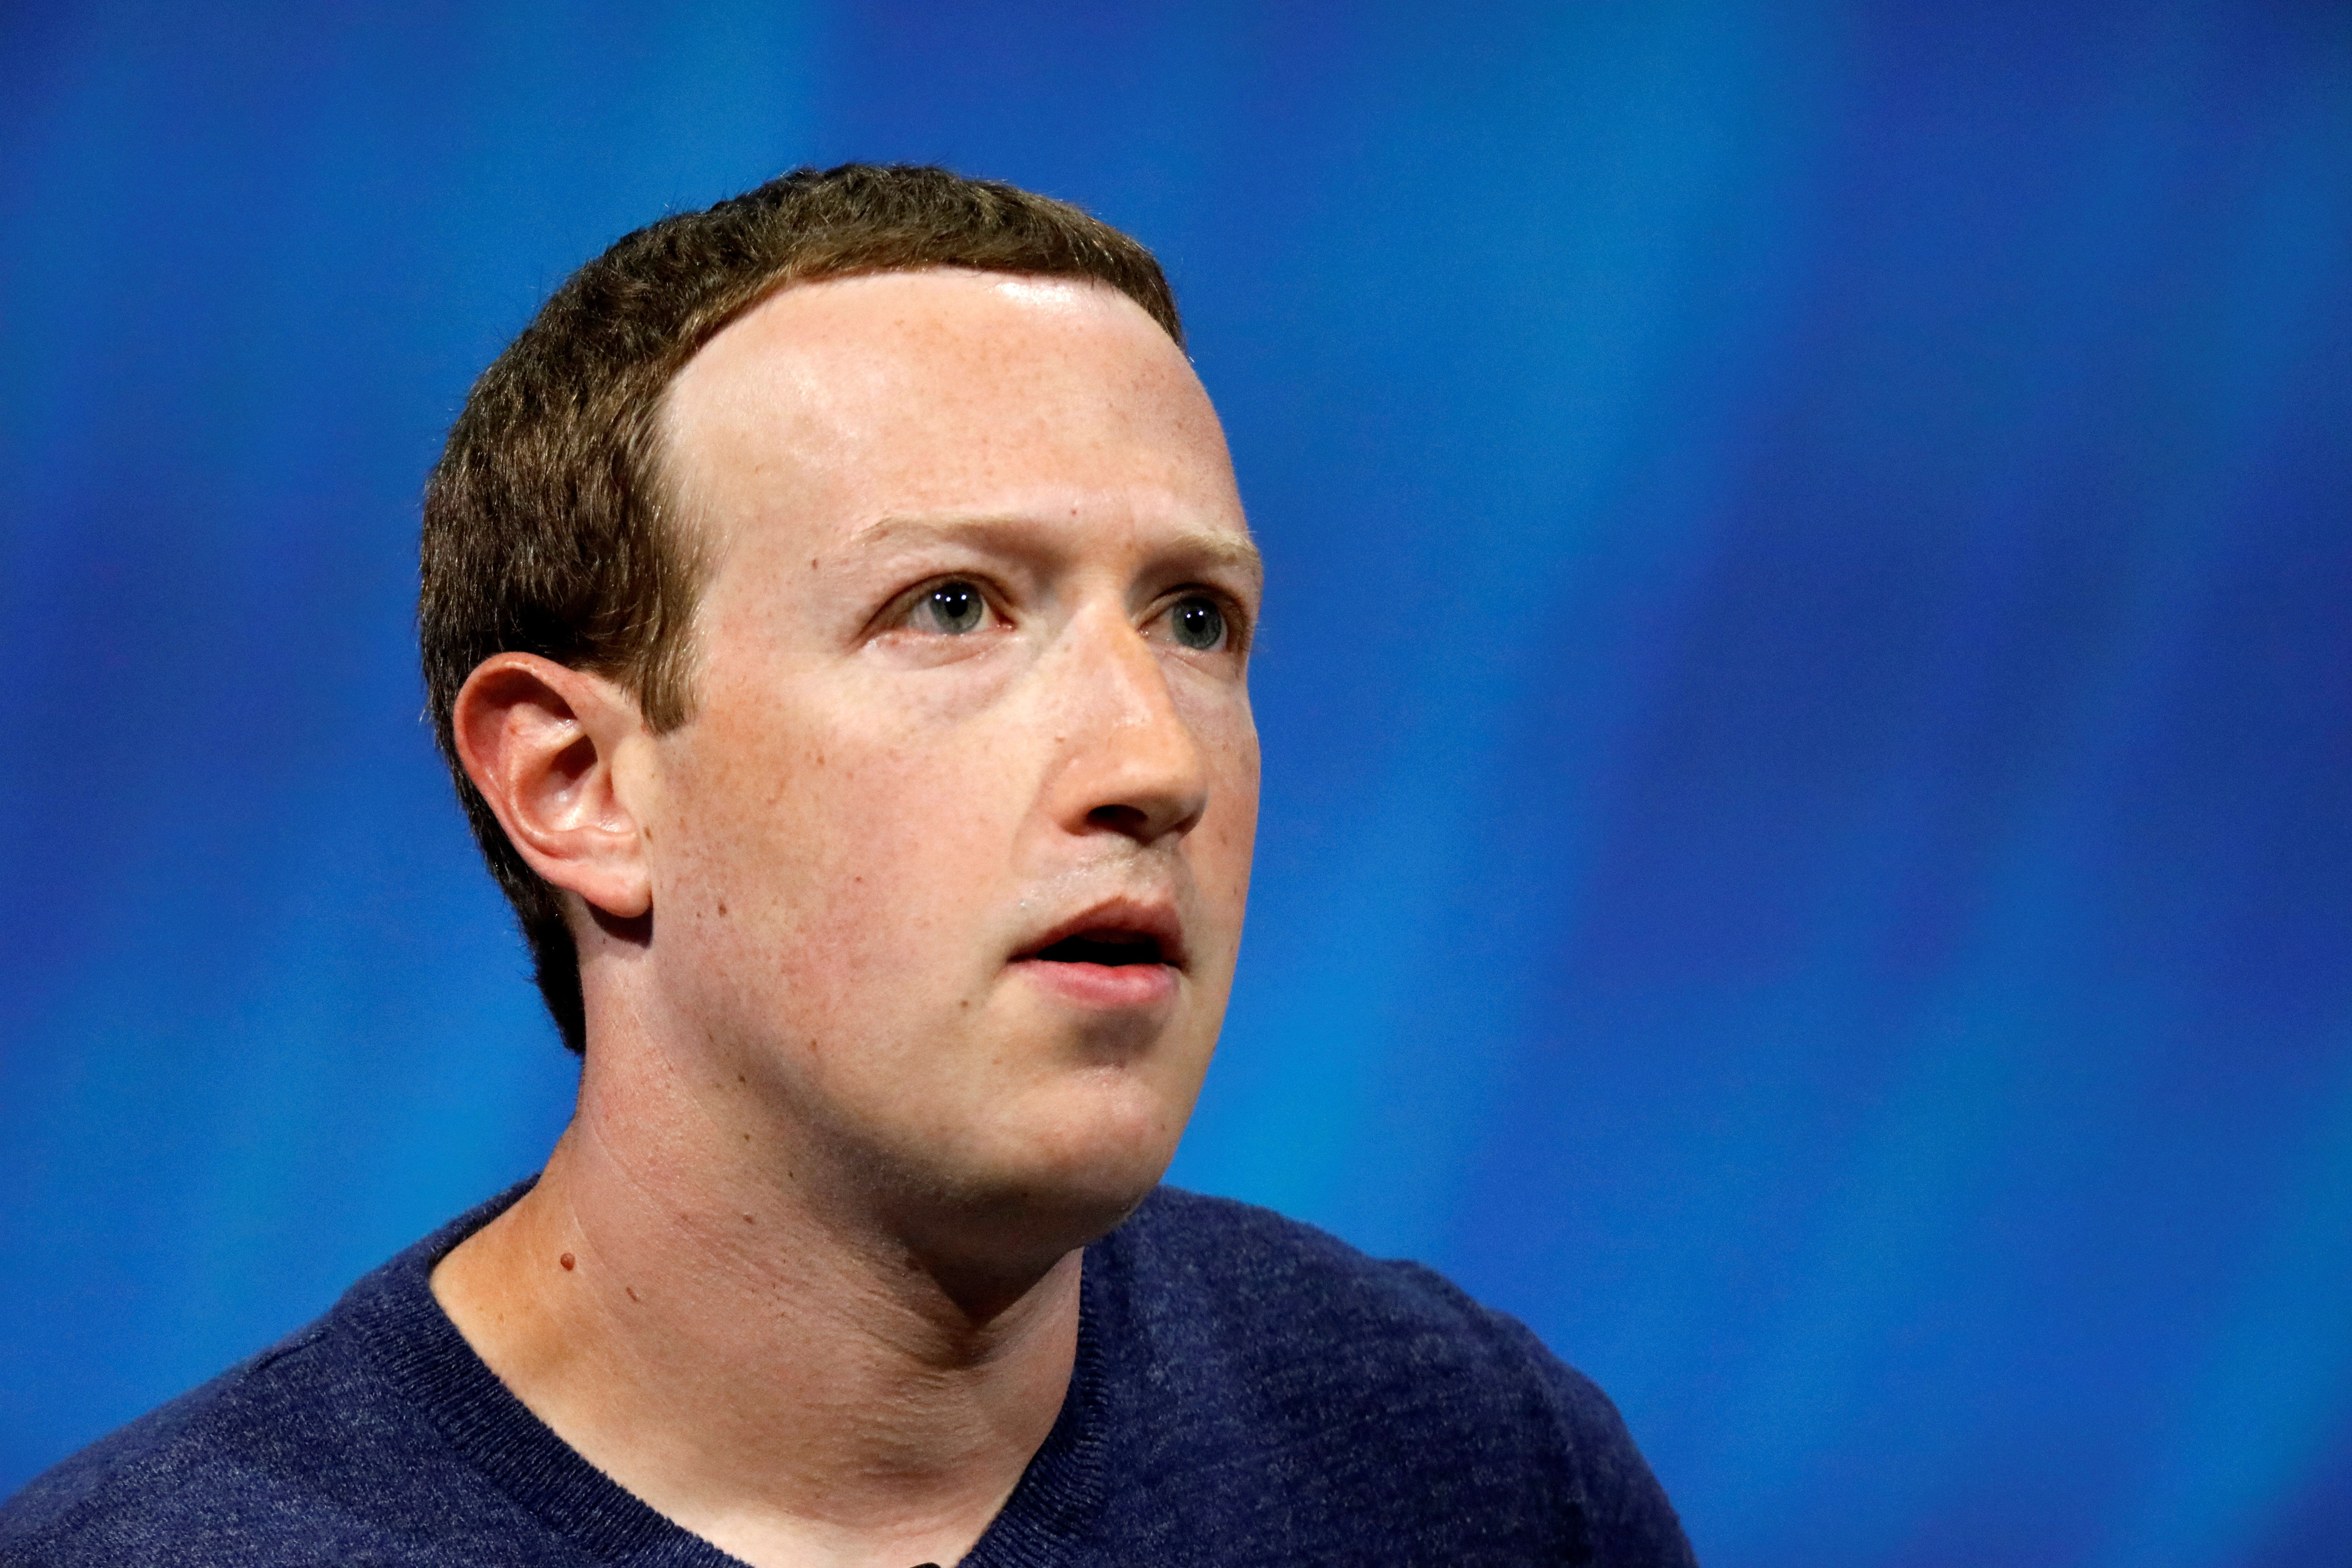 Facebook CEO Mark Zuckerberg fnd himself in hot water on Wednesday after he suggested that the company wouldn't re